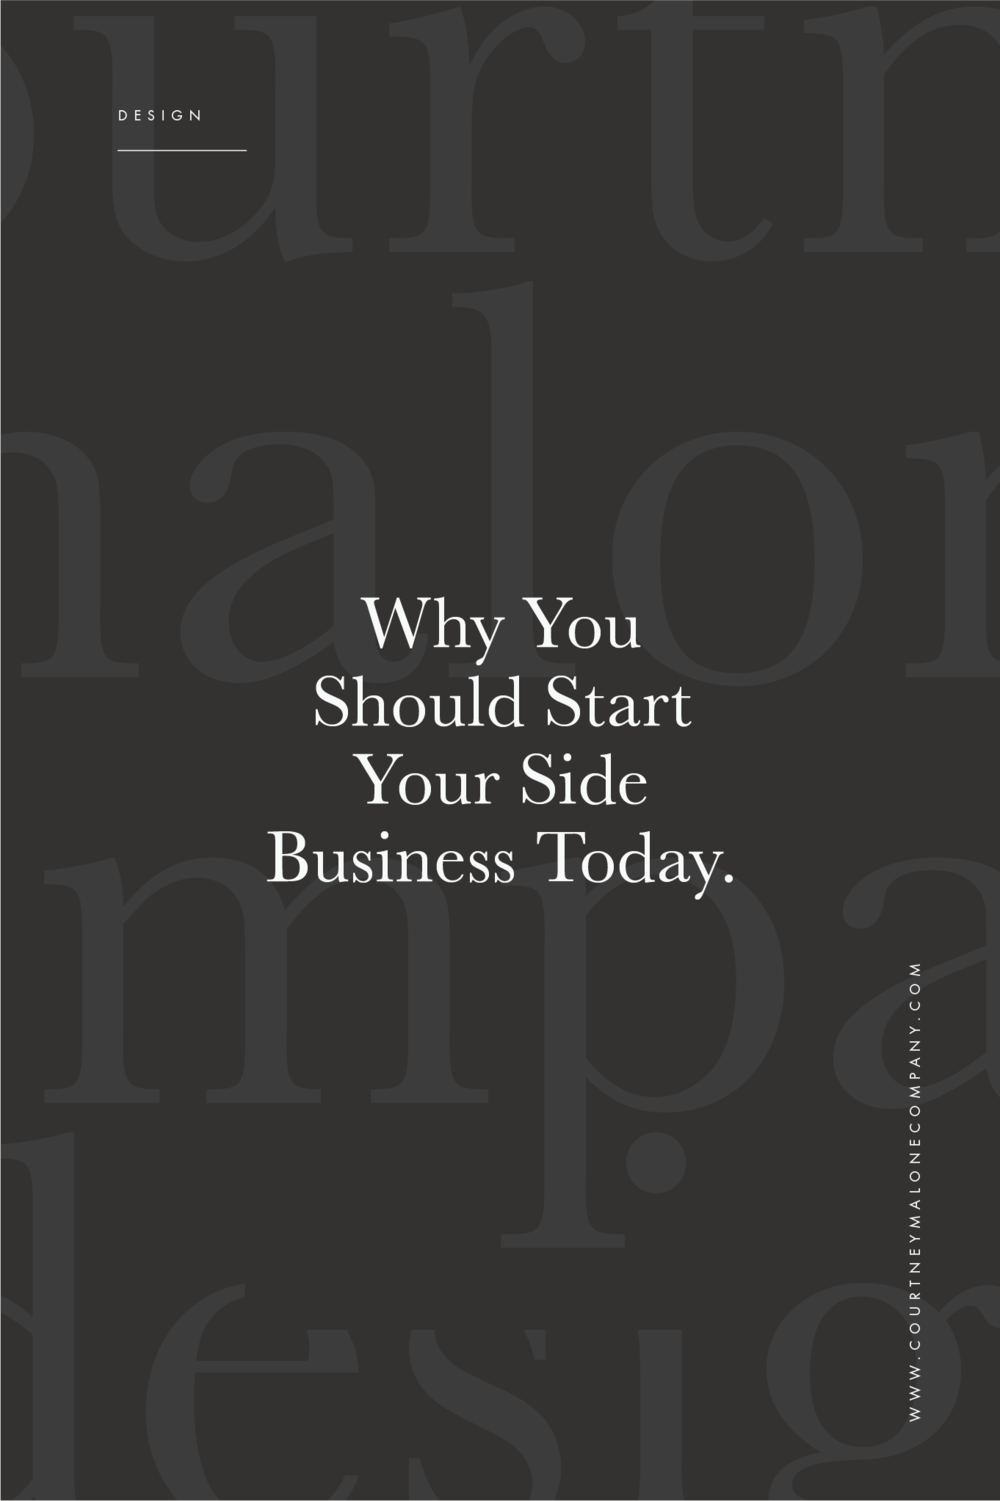 Why You Should Start Your Side Business Today | Broad + Main